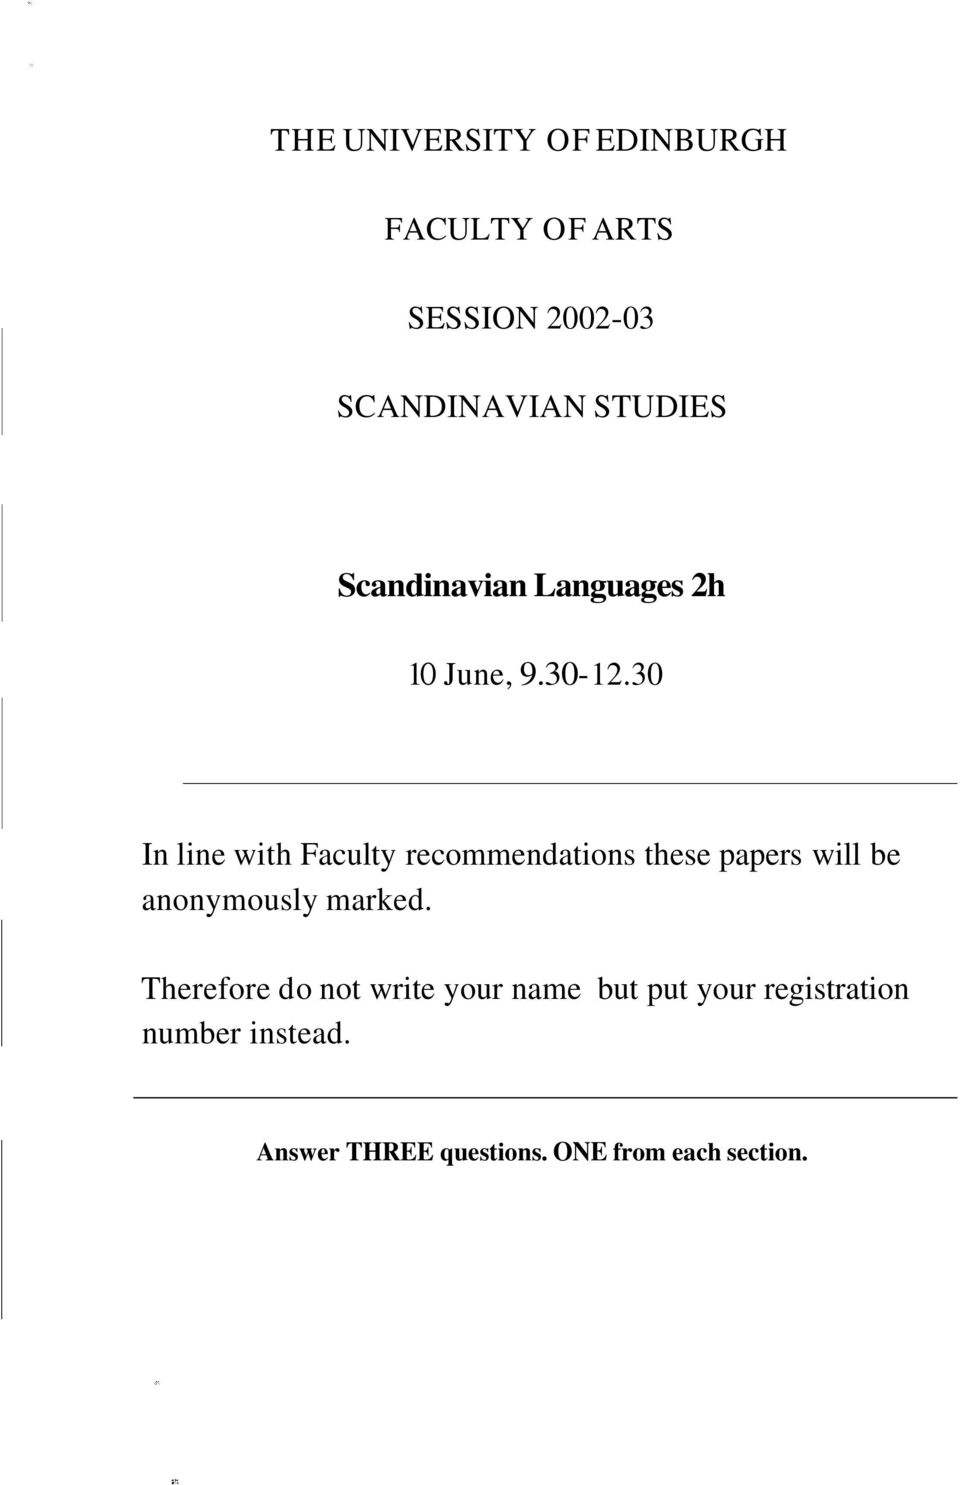 30 In line with Faculty recommendations these papers will be anonymously marked.